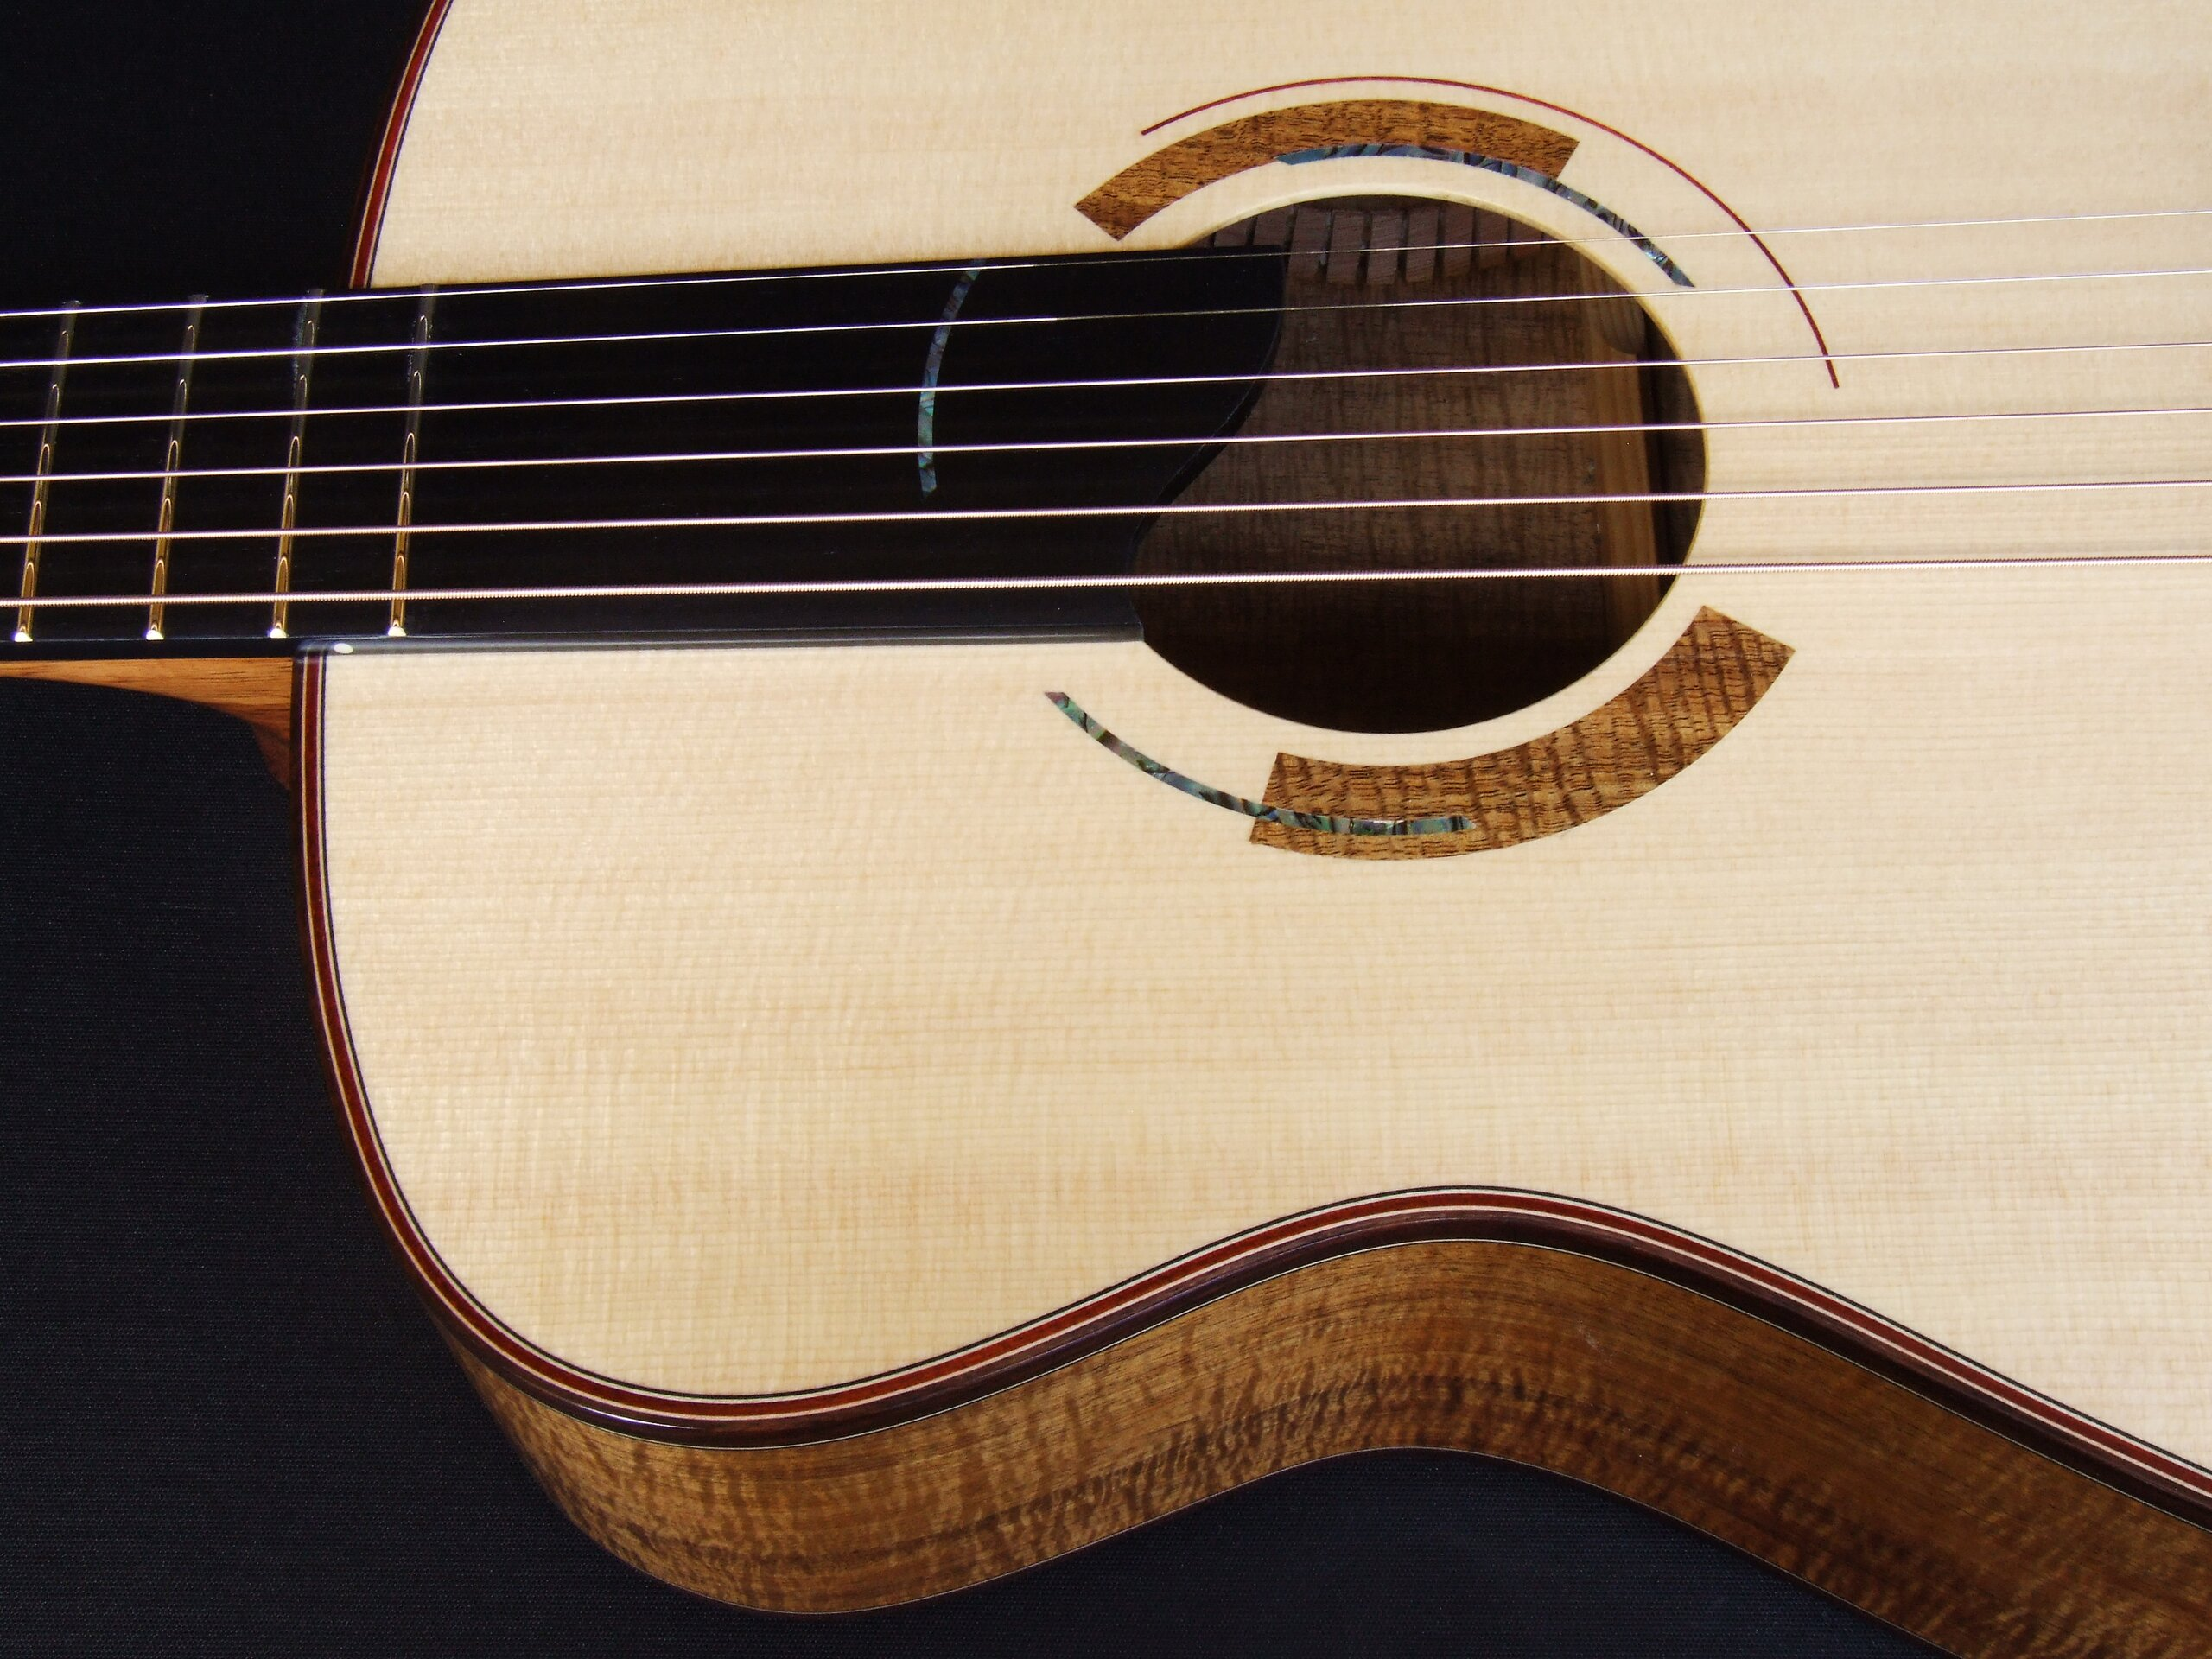 Art deco rosette on a guitar with 15 frets